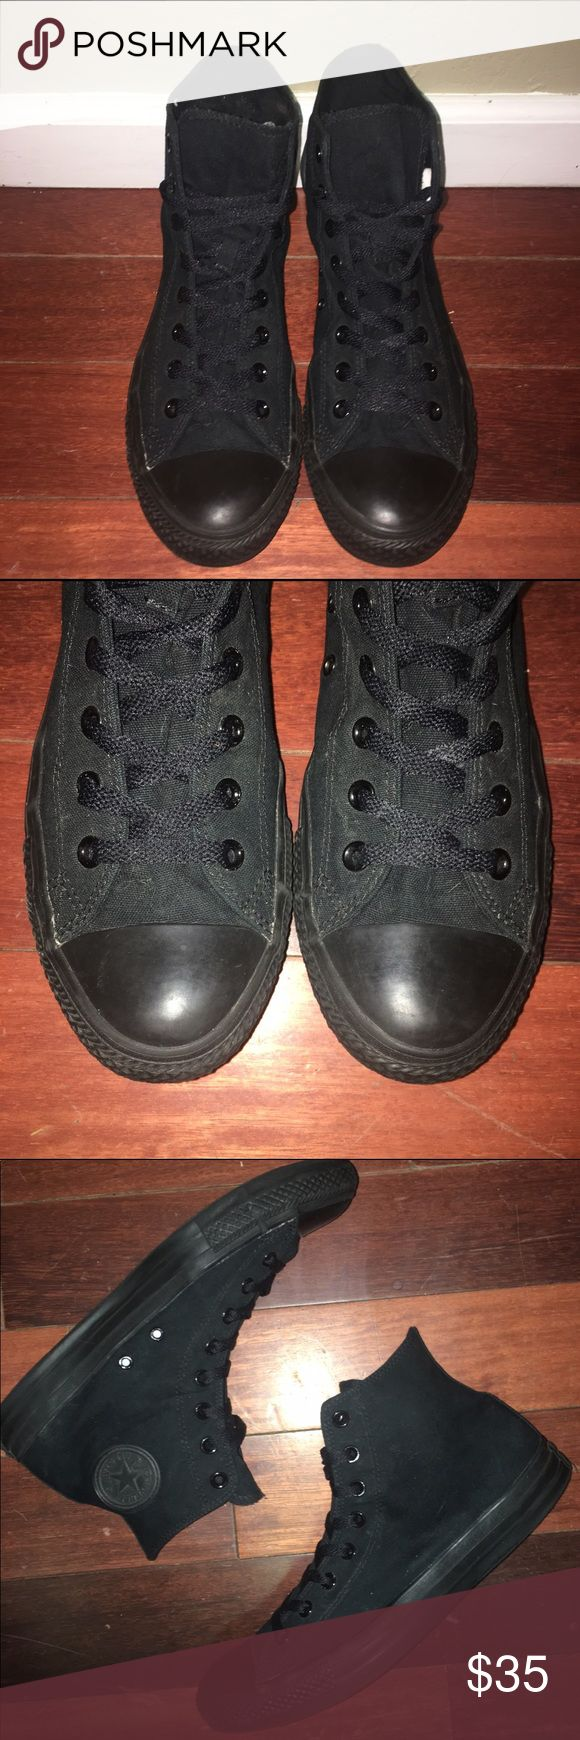 FLASH SALE Converse Chuck Taylor M-10 W-12 Converse Chuck Taylor All Star High Tops Men's 10, Women's 12 Worn Once and in Excellent Preowned Condition as shown in photos. Converse Shoes Sneakers